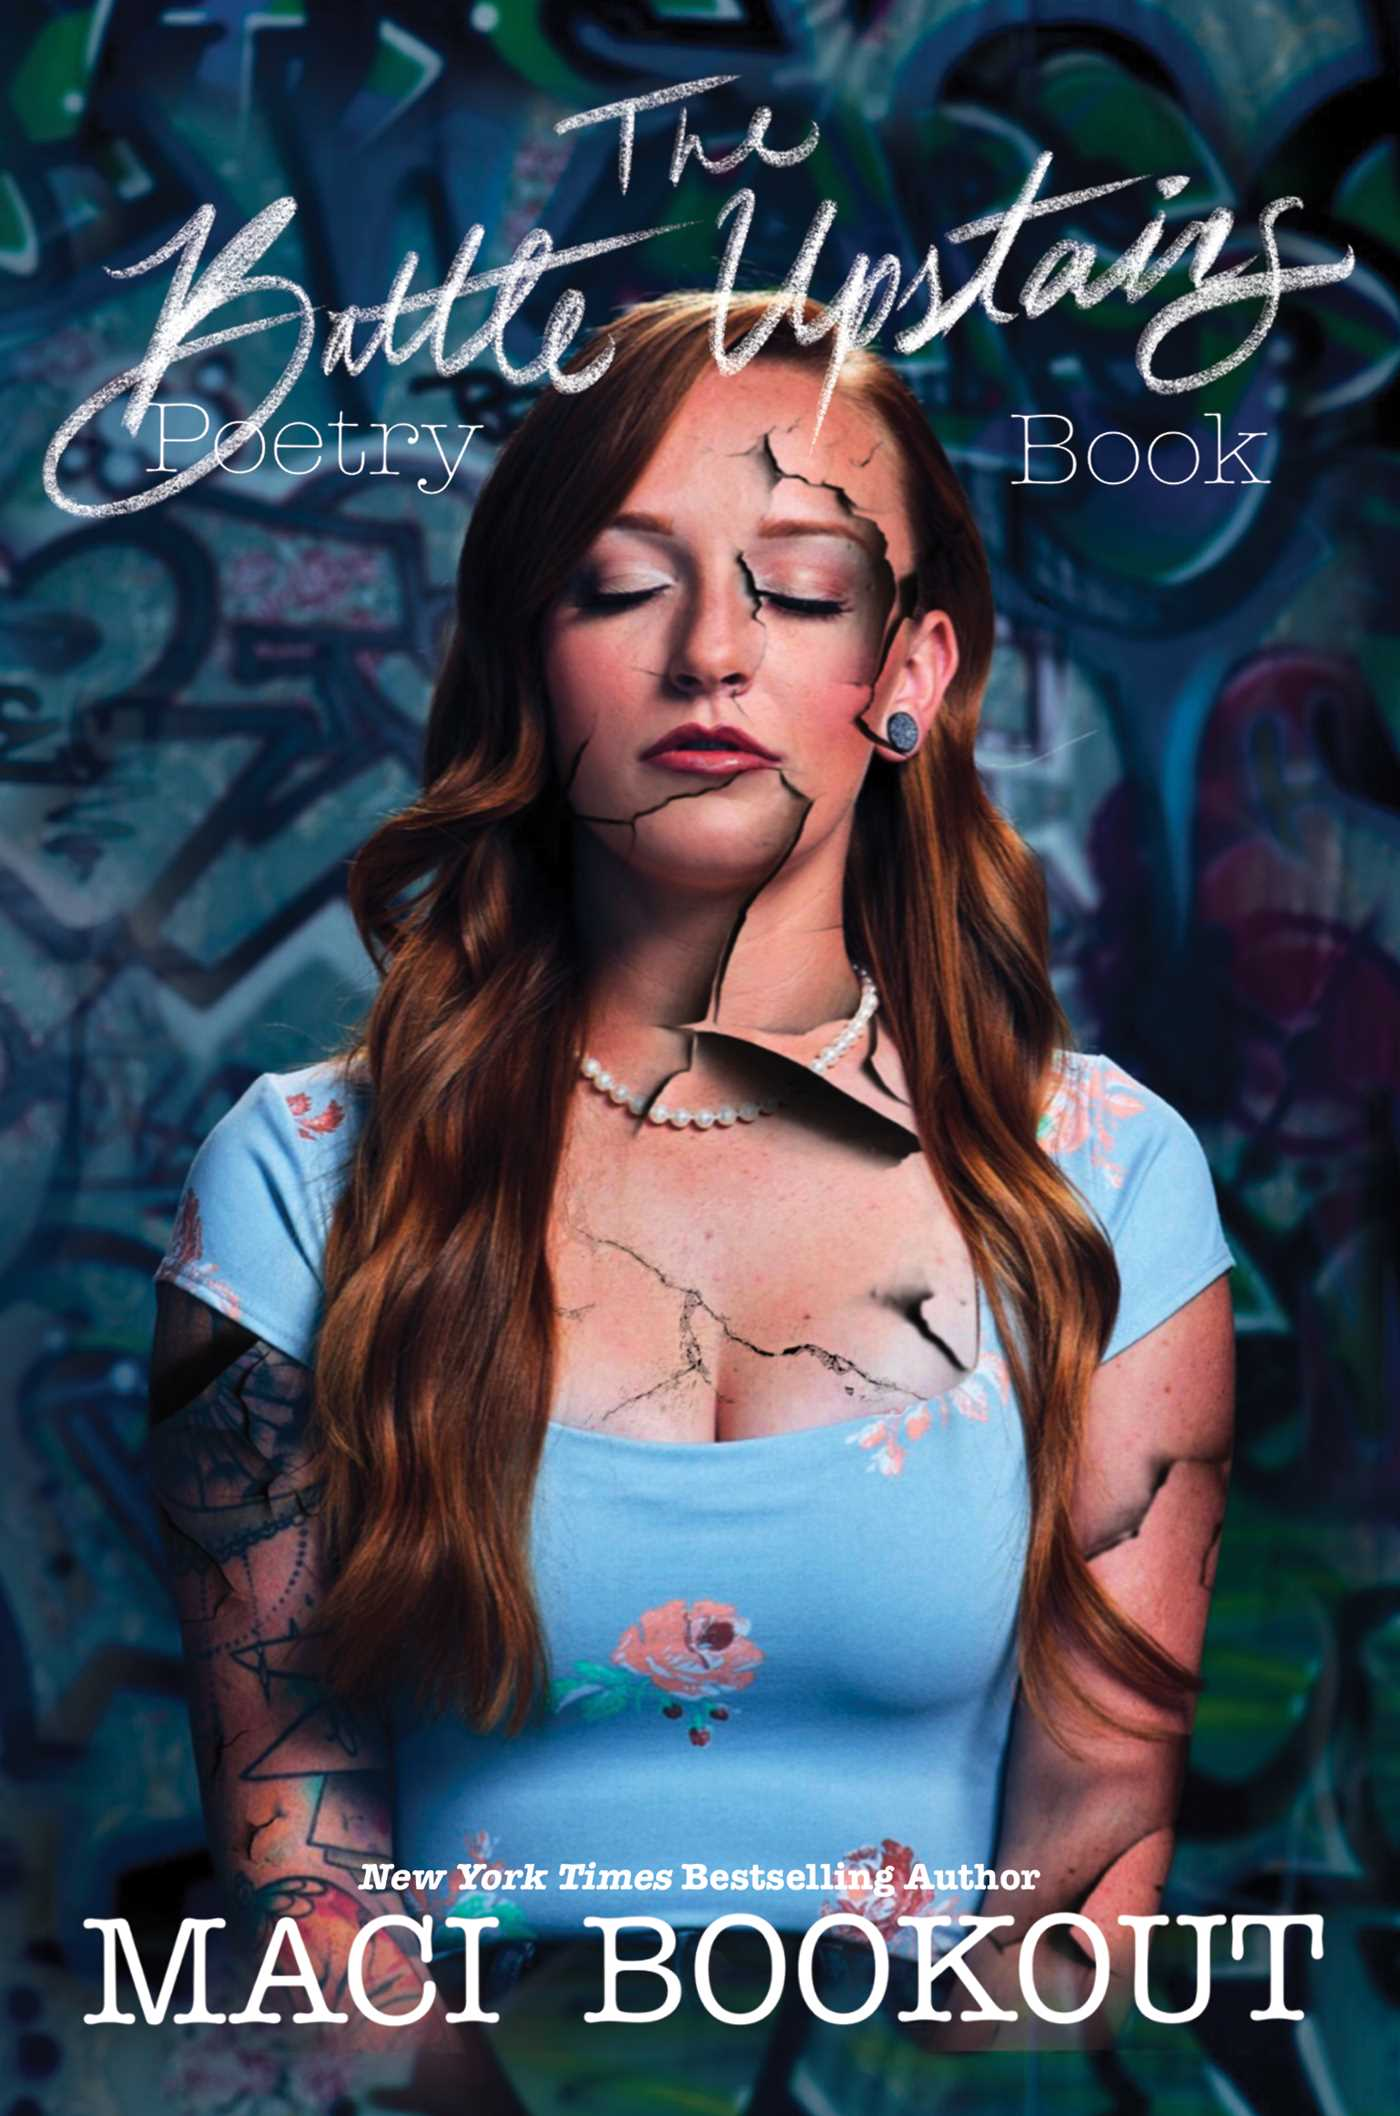 The Battle Upstairs: Poetry Book